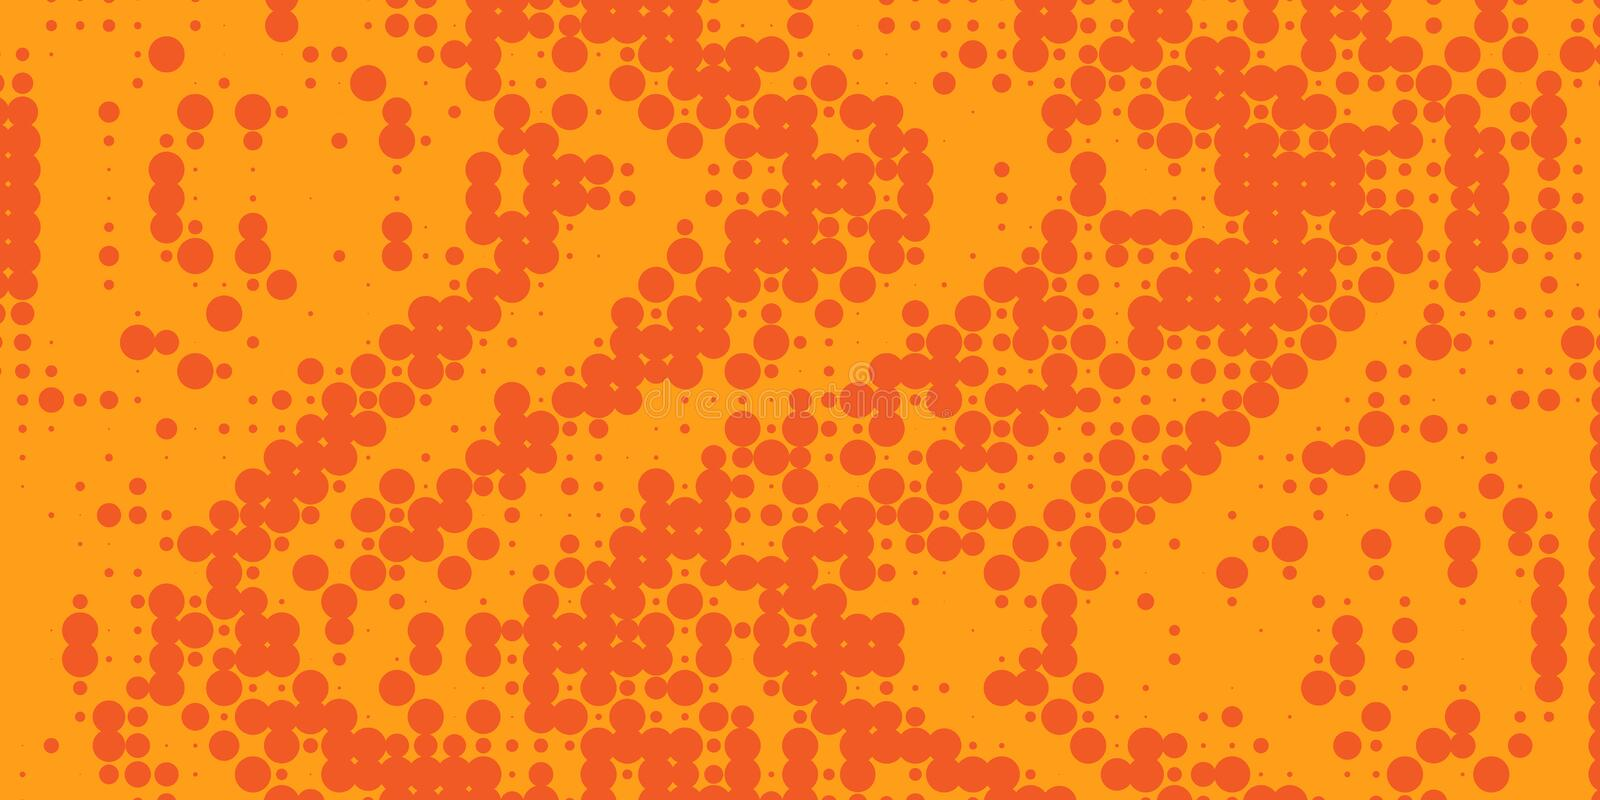 Gradient  futuristic pattern. Halftone colorful gradient background for design decoration. Abstract business bright grunge background. Minimal geometric stock illustration